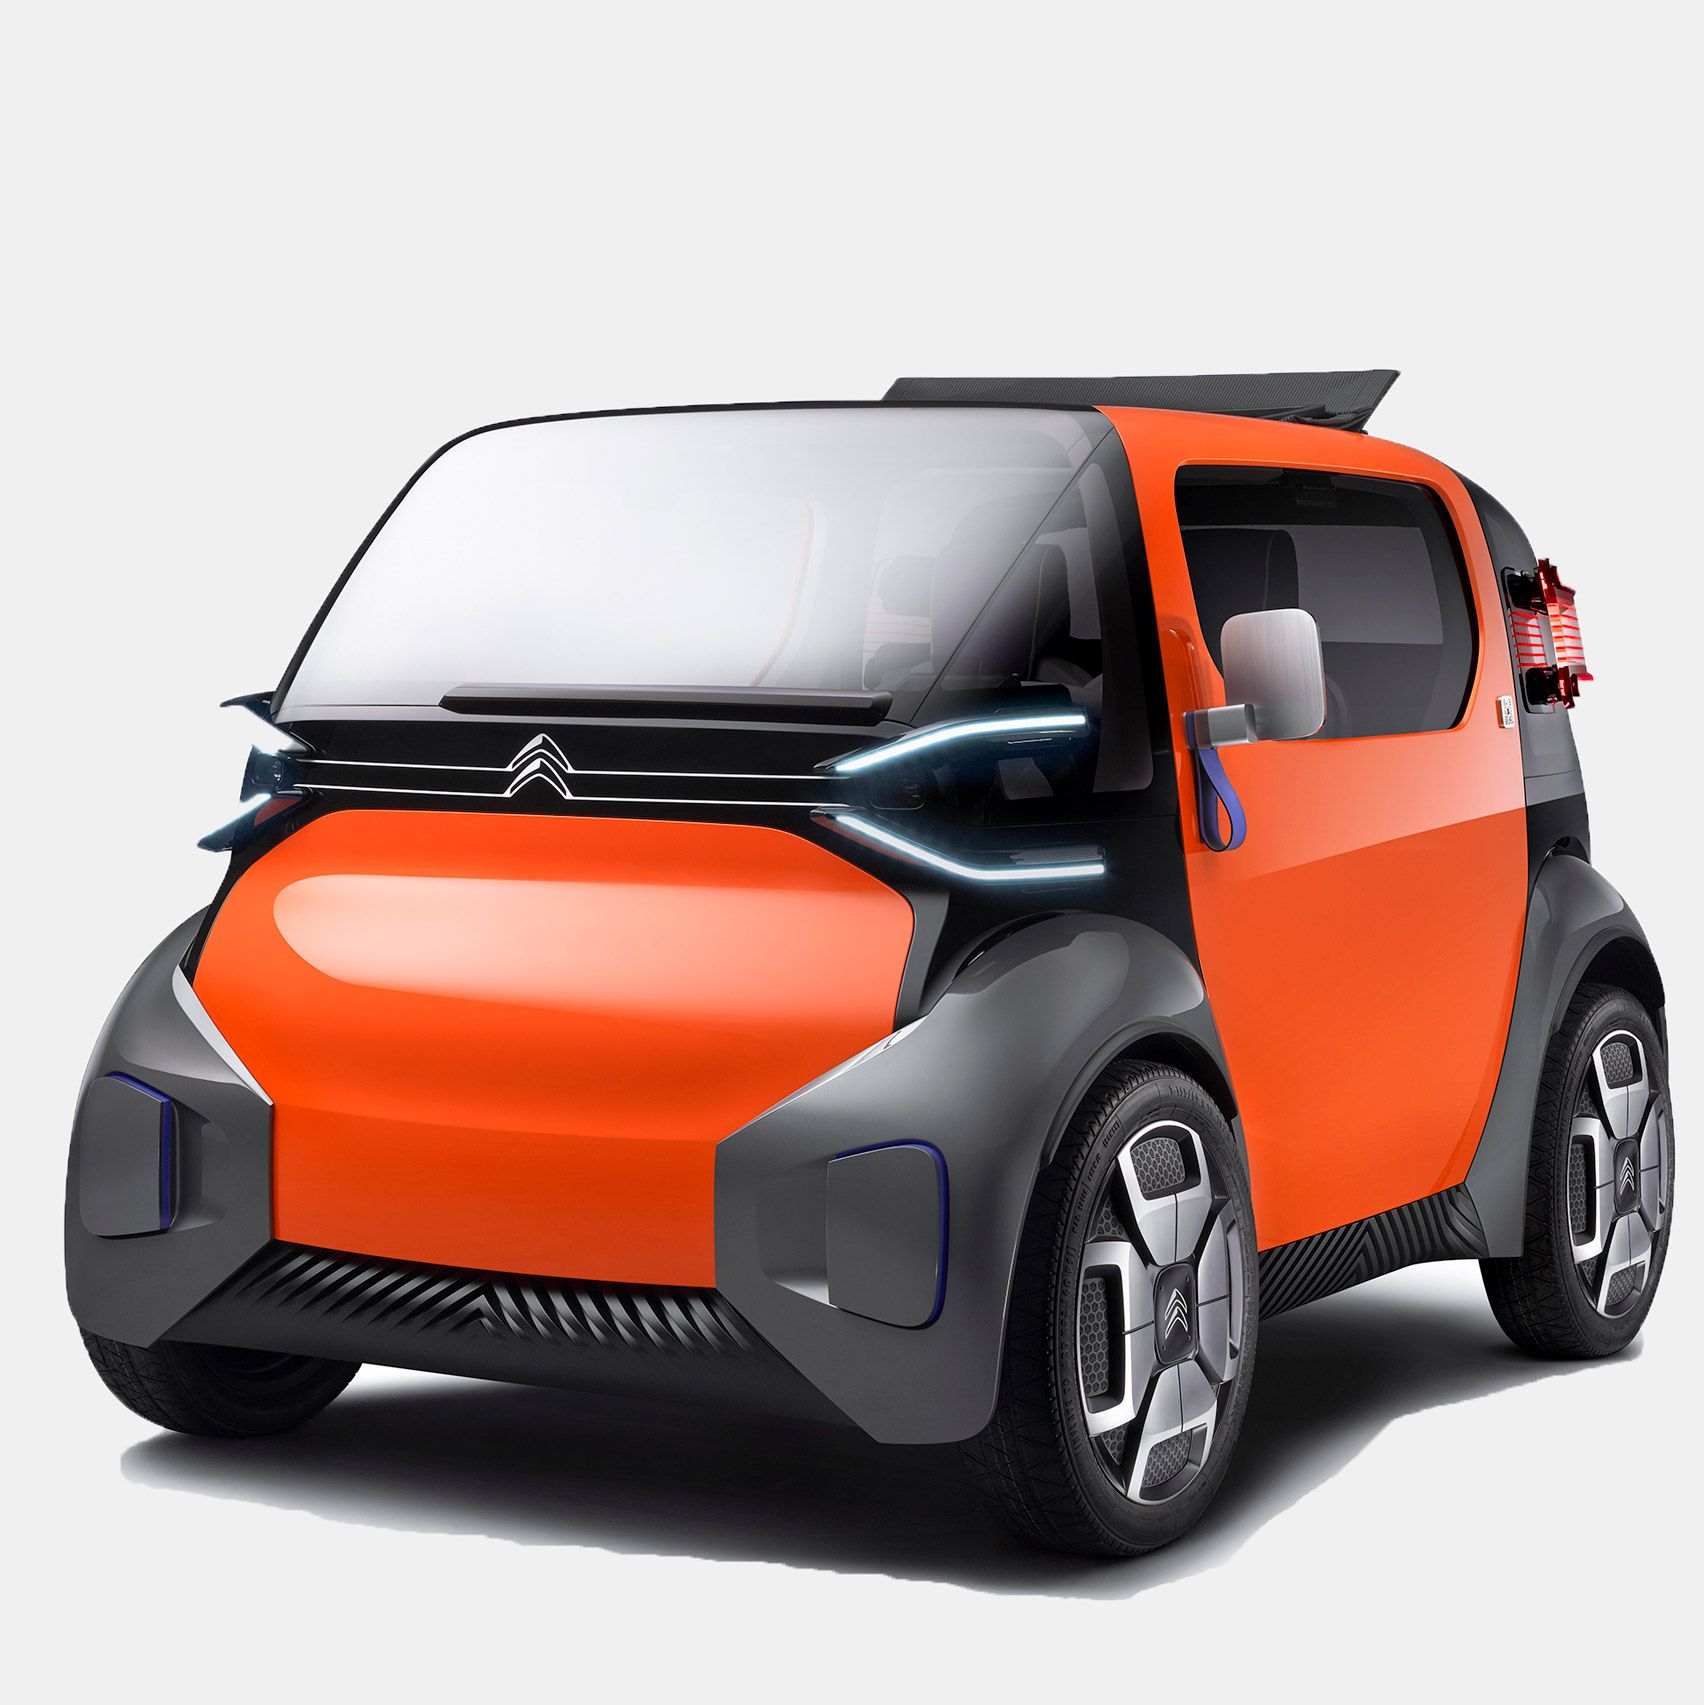 Citroën Designs Ultra-compact Concept Car For Unlicenced